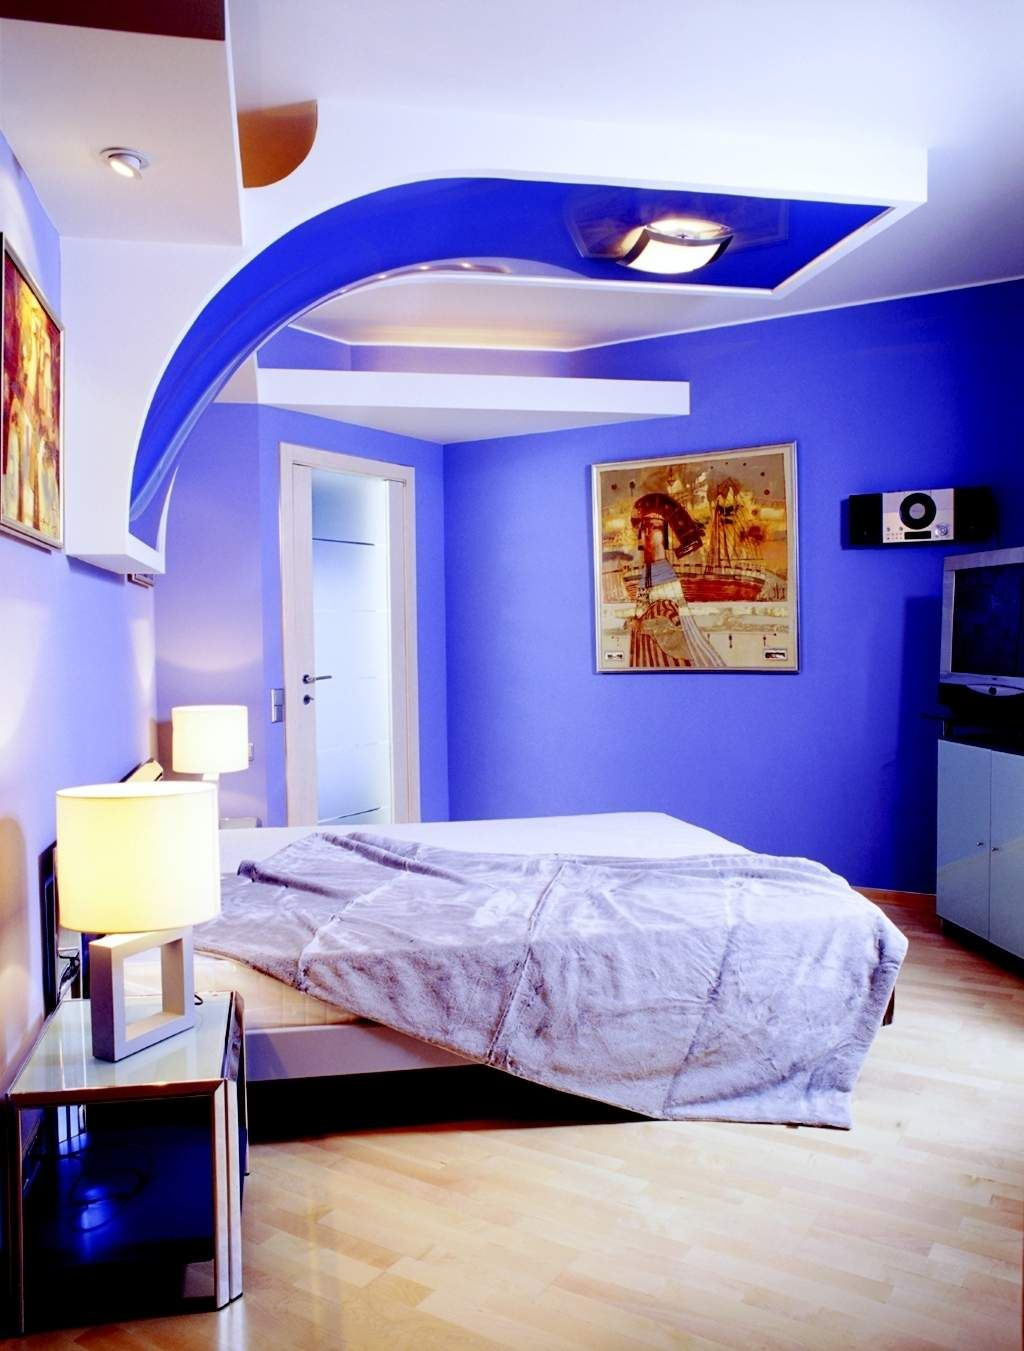 Bedroom color ideas for small rooms - Kids Bedroom Futuristic Design Of Boys Bedroom In Bright Blue And White Color Scheme Cool Color